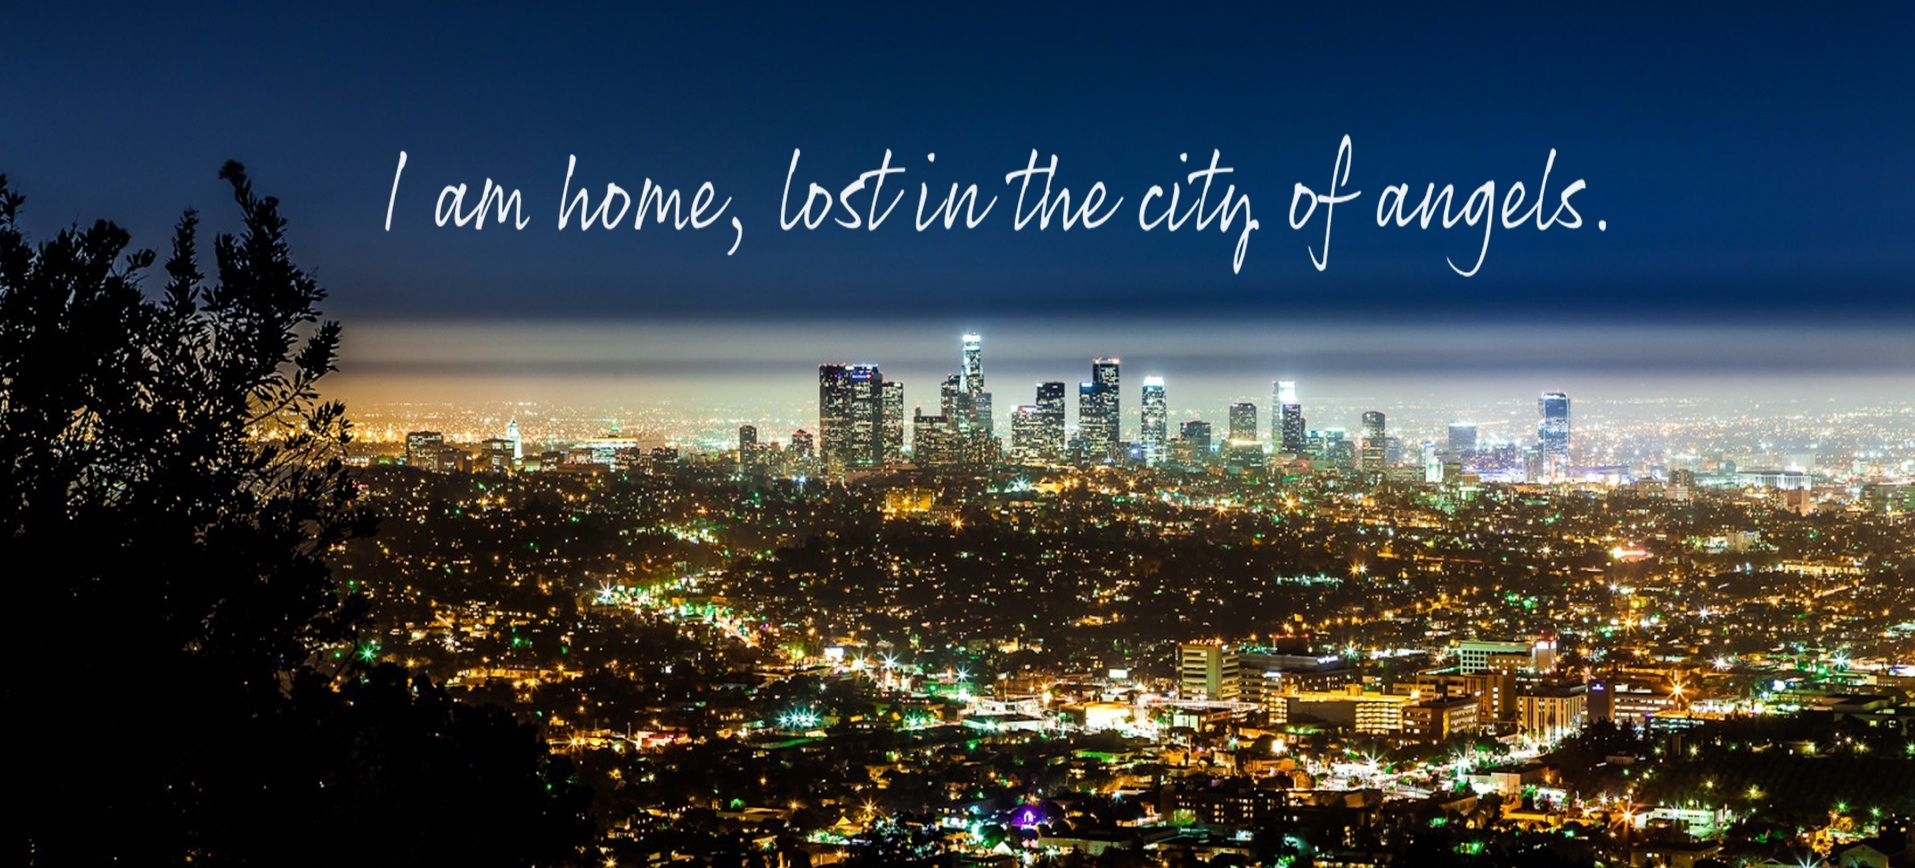 City Of Angels Thirty Seconds To Mars Los Angeles At Night City View Los Angeles Wallpaper